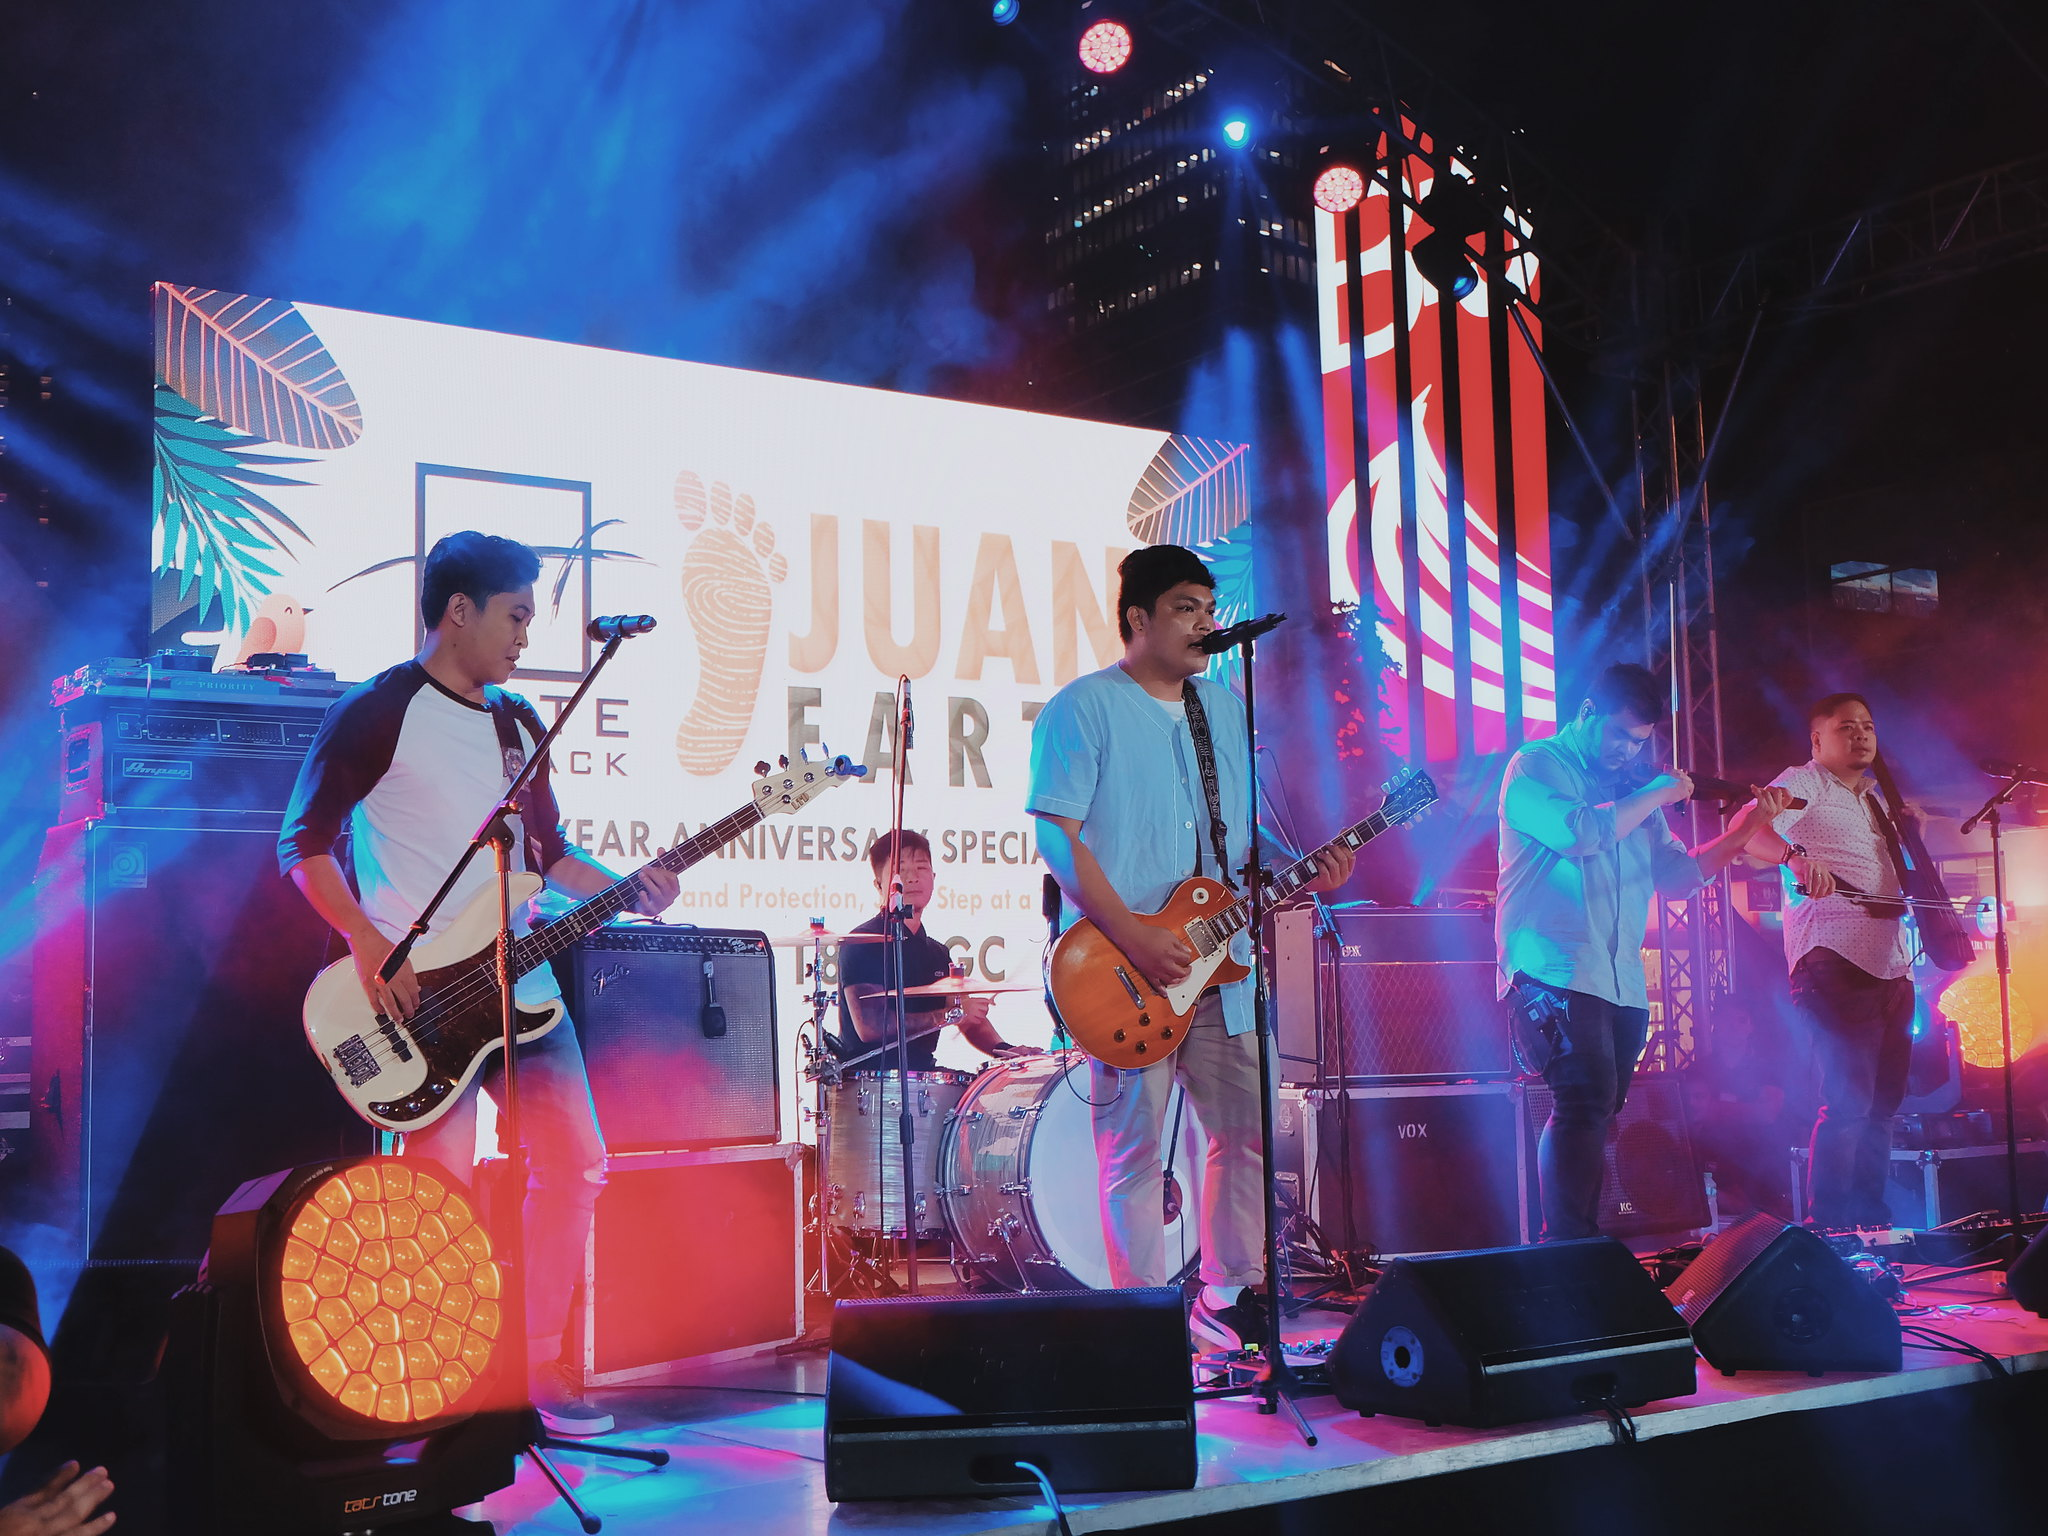 Silent Sanctuary Band Juan Earth Event 5th Anniversary Celebration